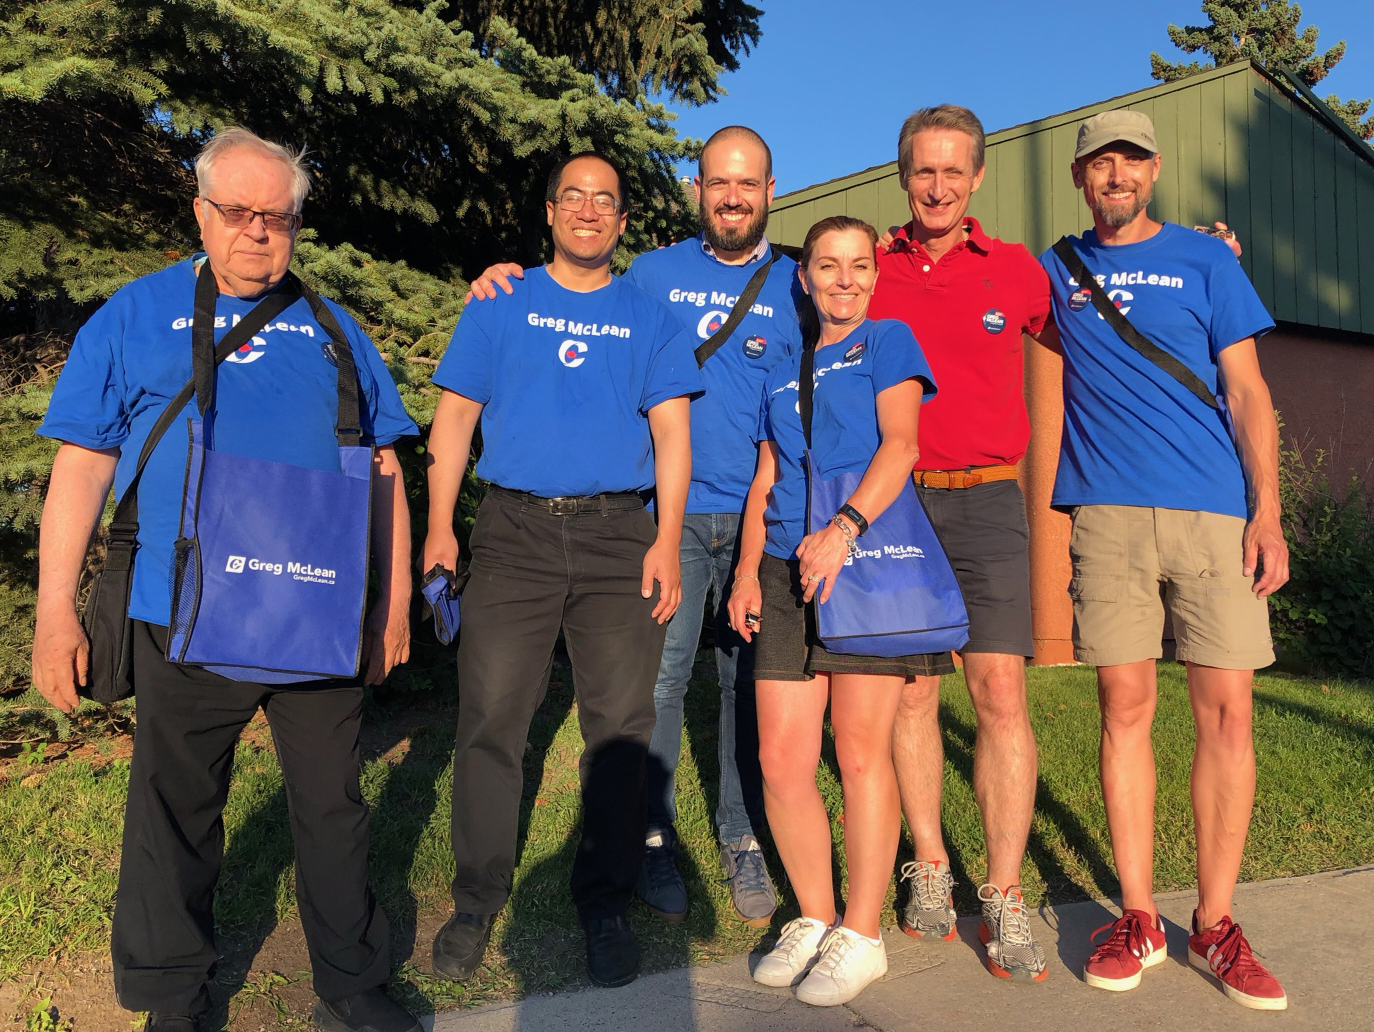 Here's July 25's doorknocking crew, ready to talk to folks in South Calgary. They are sporting our new branded tote bags, perfect for water bottles and other essential gear.